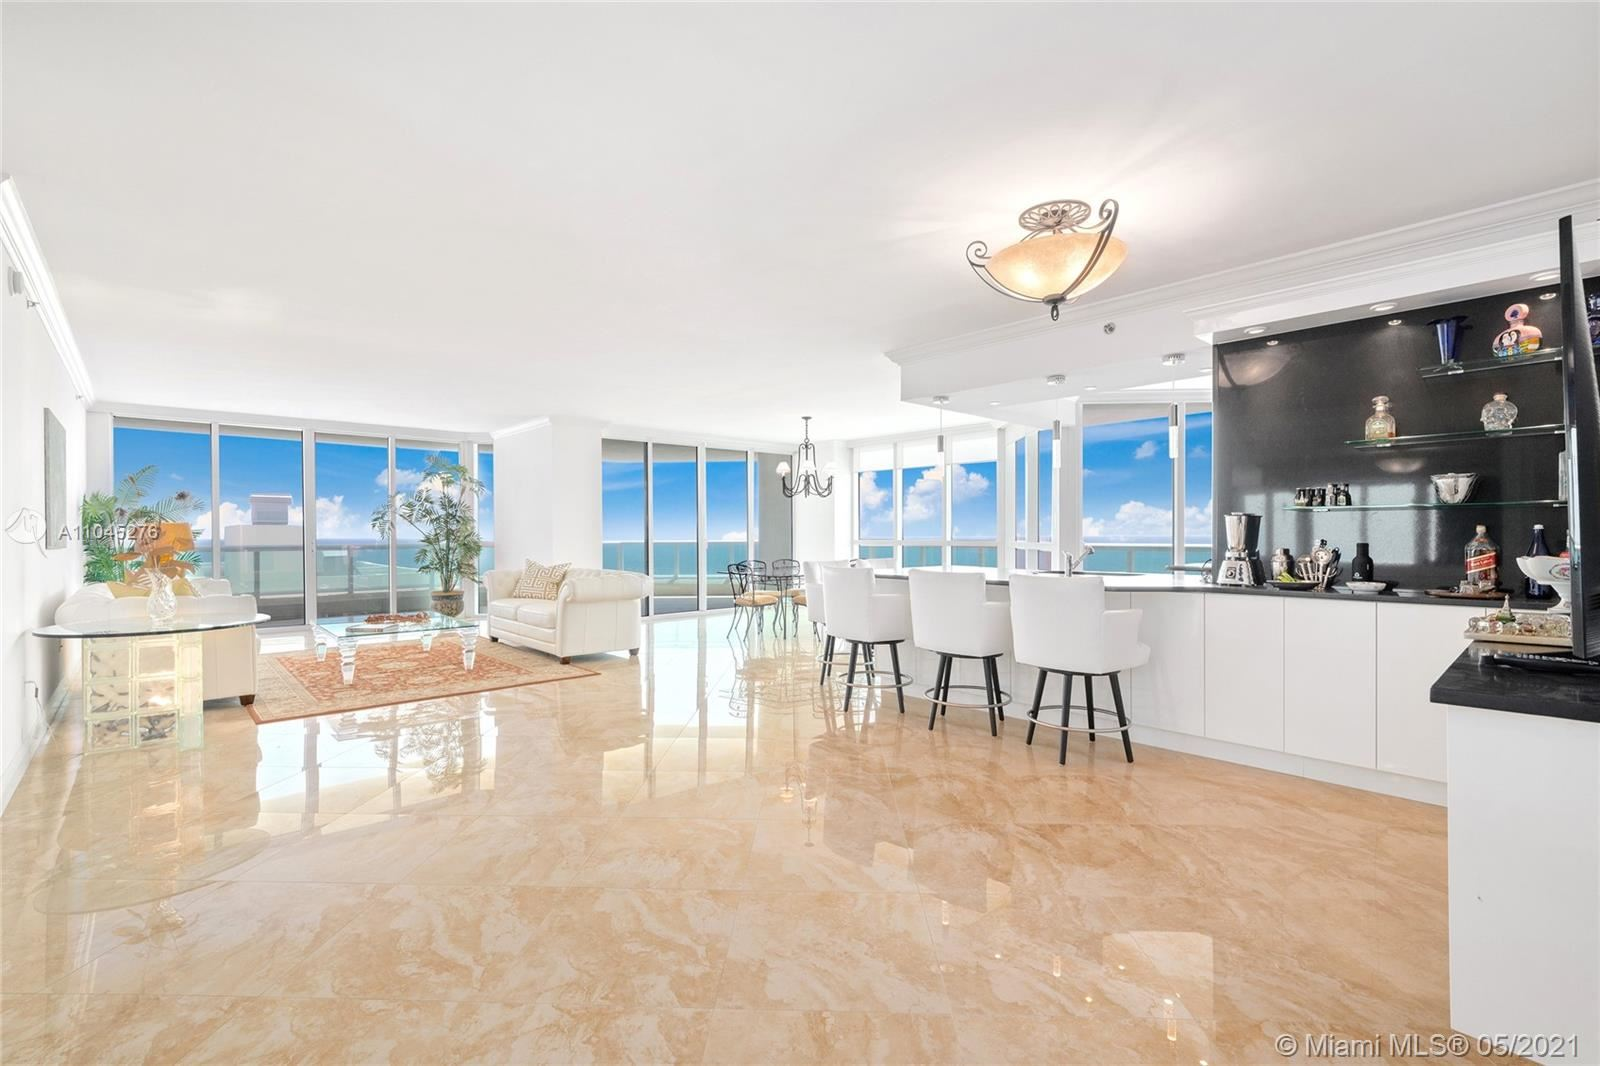 Photo of 101 S Fort Lauderdale Beach Blvd #901, Fort Lauderdale, FL 33316 (MLS # A11045276)